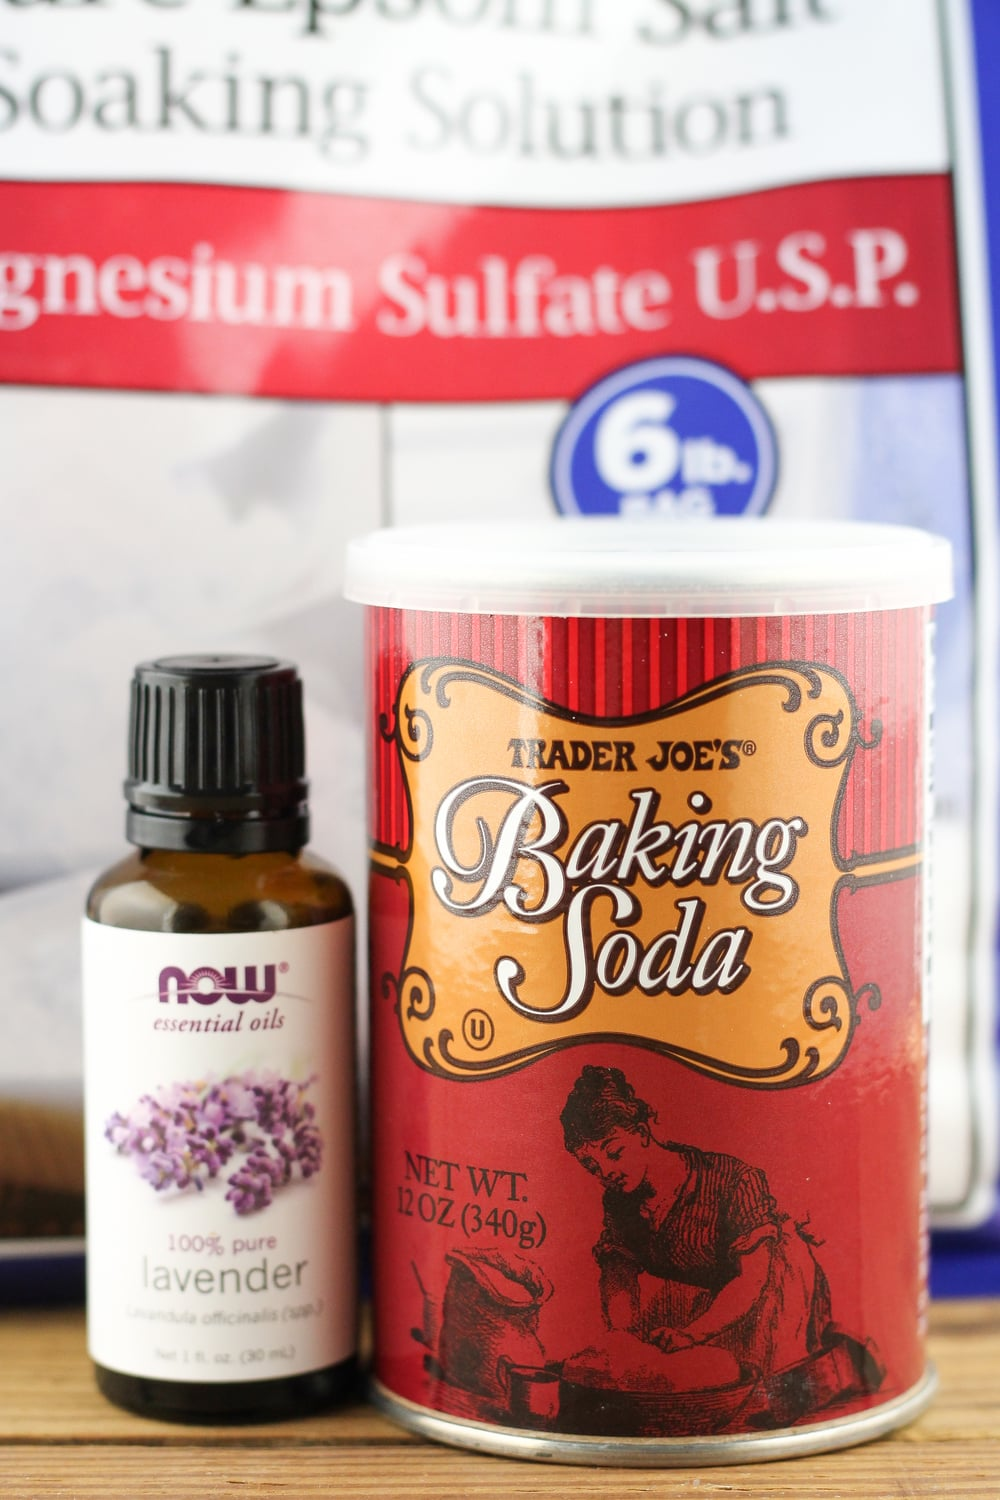 epsom salt bath, baking soda, essential oil